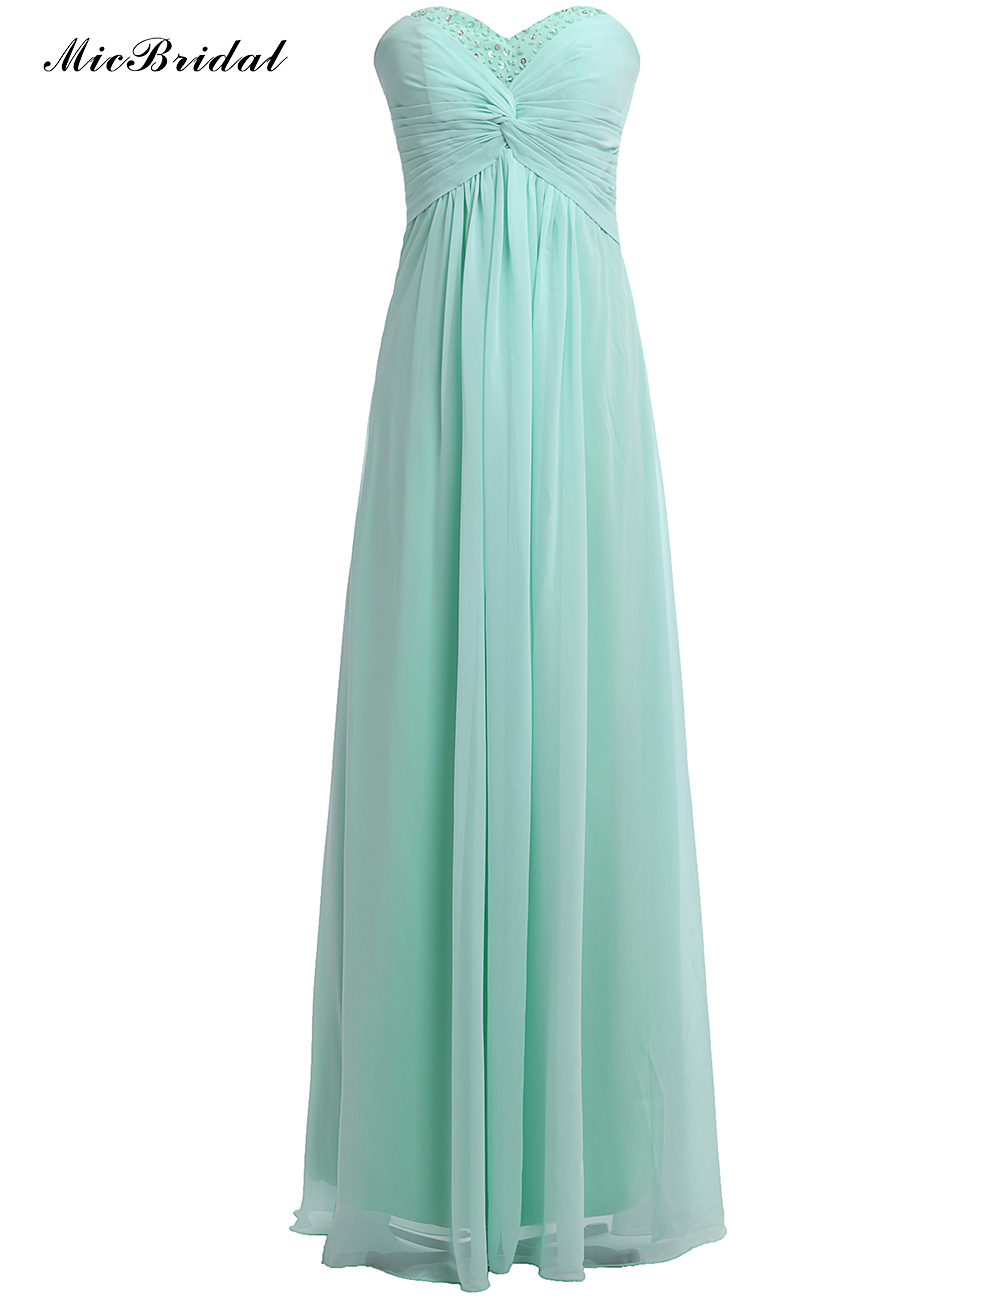 Micbridal mint green pleated chiffon long dresses for for Wedding guest long dresses